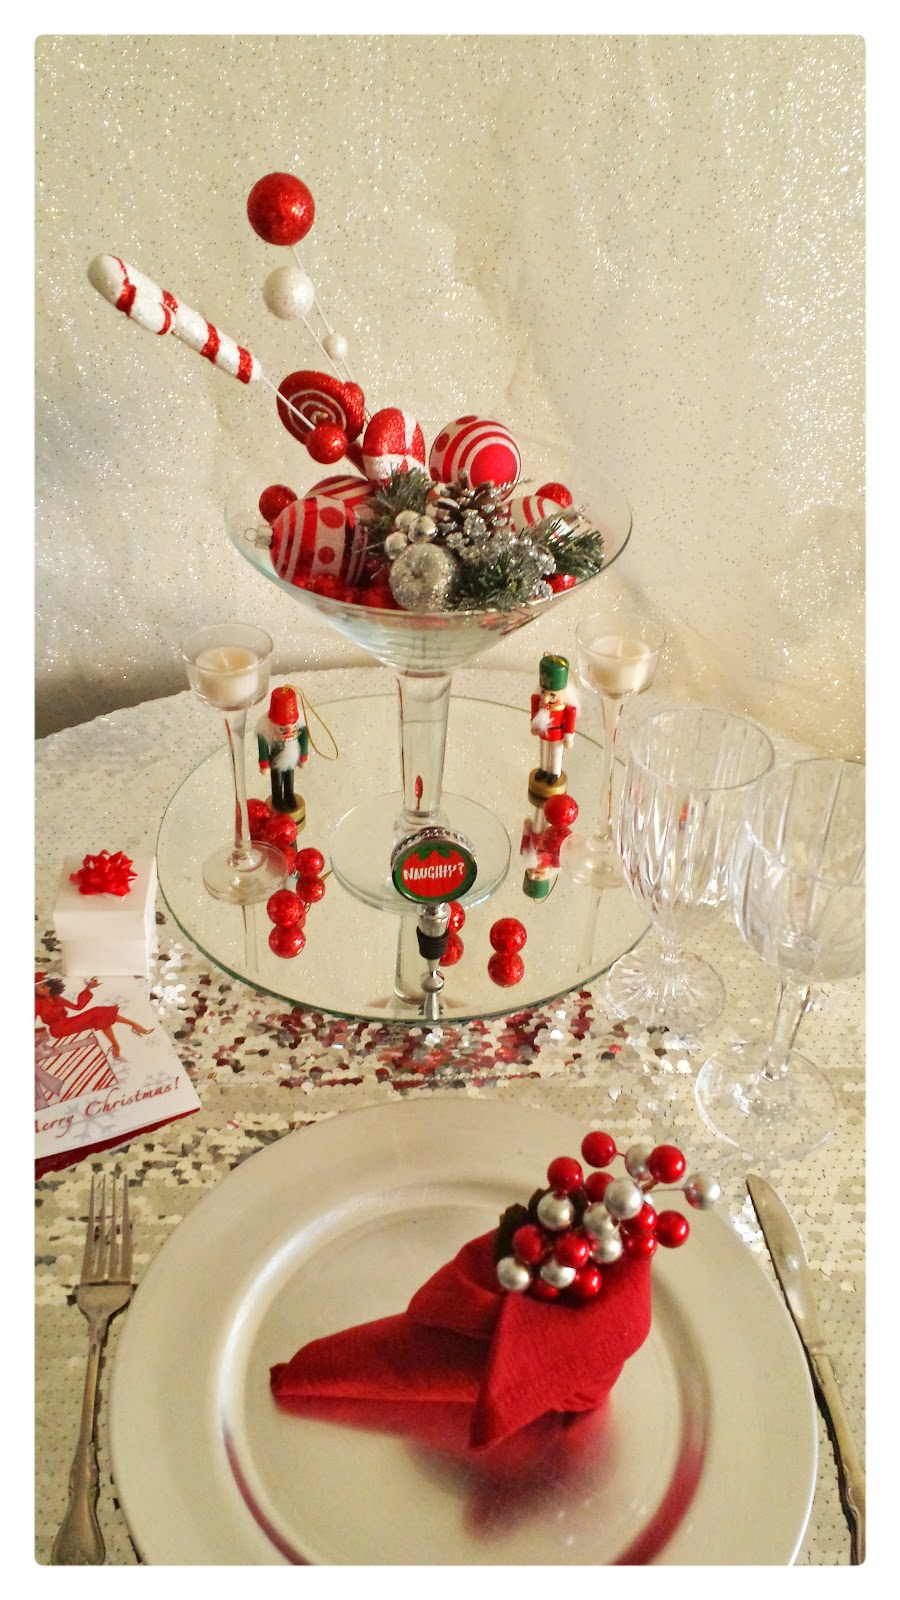 christmas table design using ornaments, sequin tablebloth, red napkins folded into elf shoe